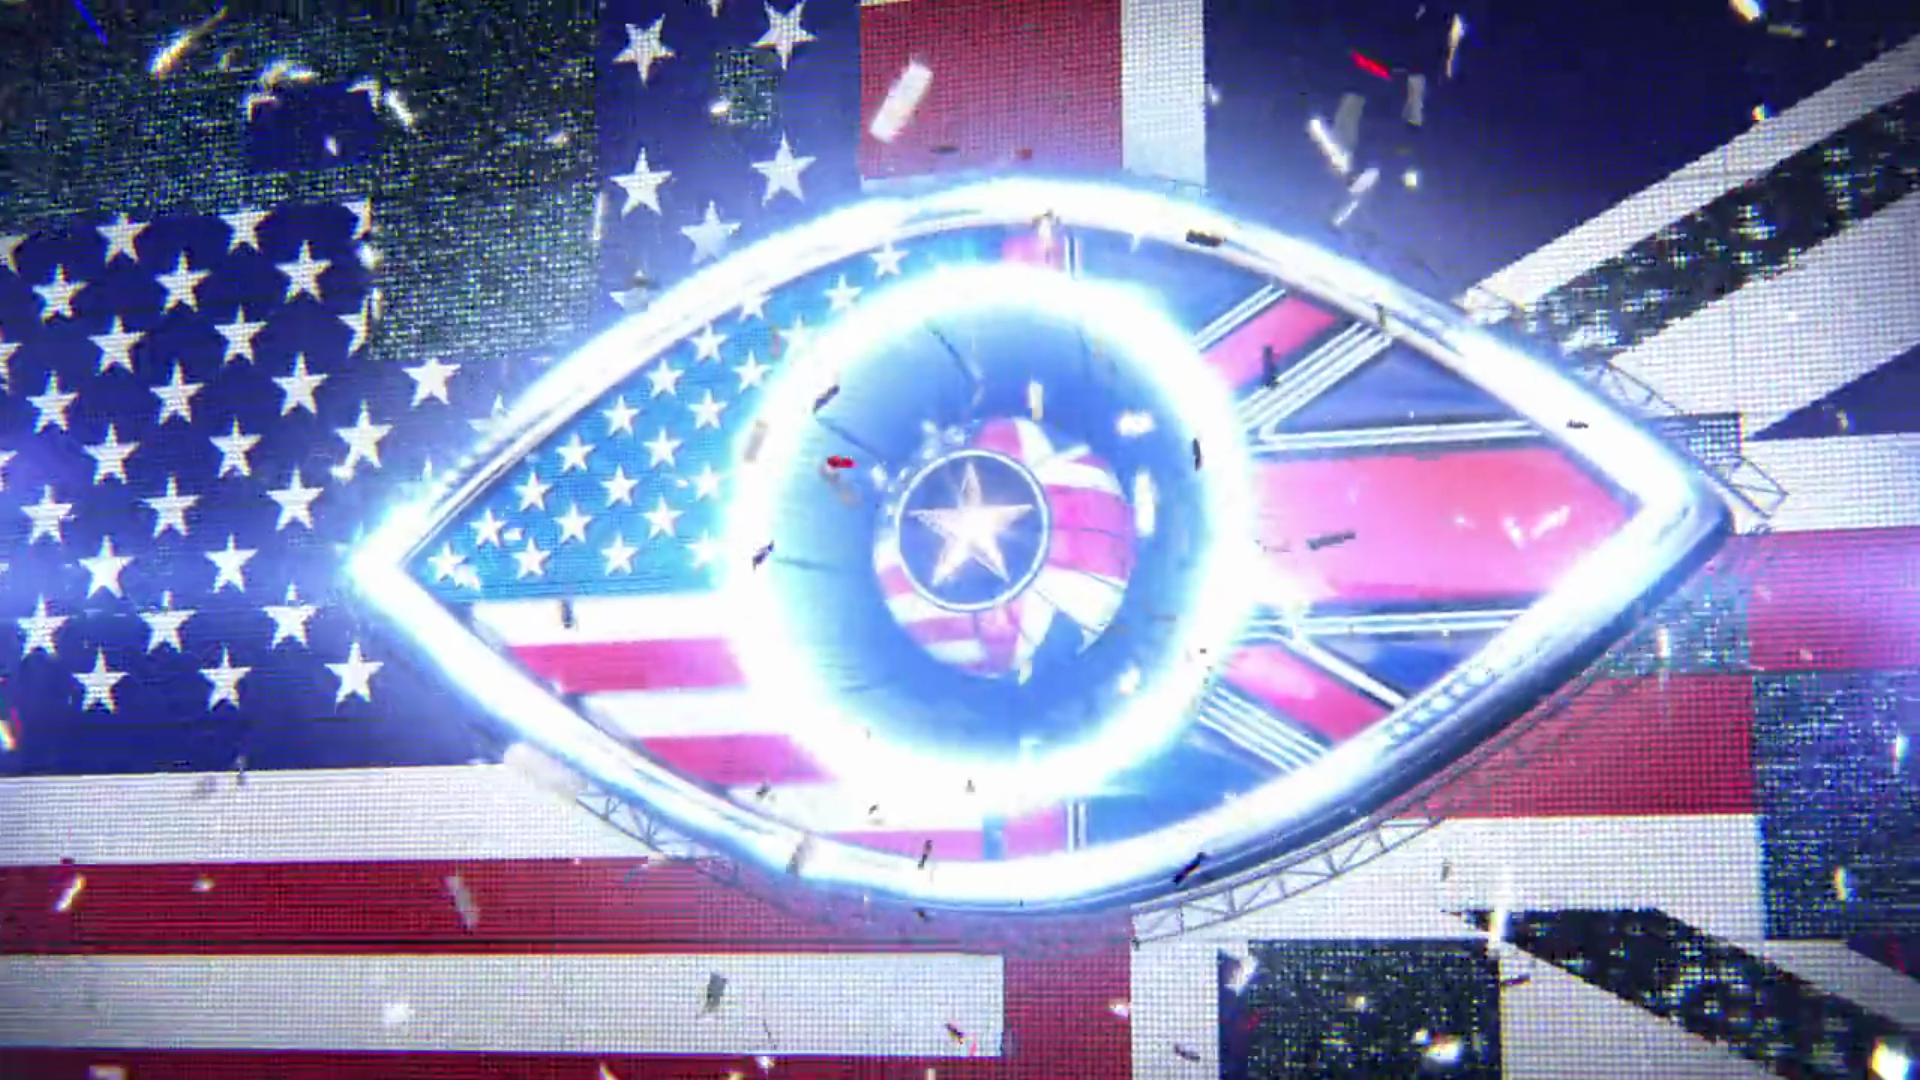 Day 26: Highlights from Day 25 in the Celebrity Big Brother House